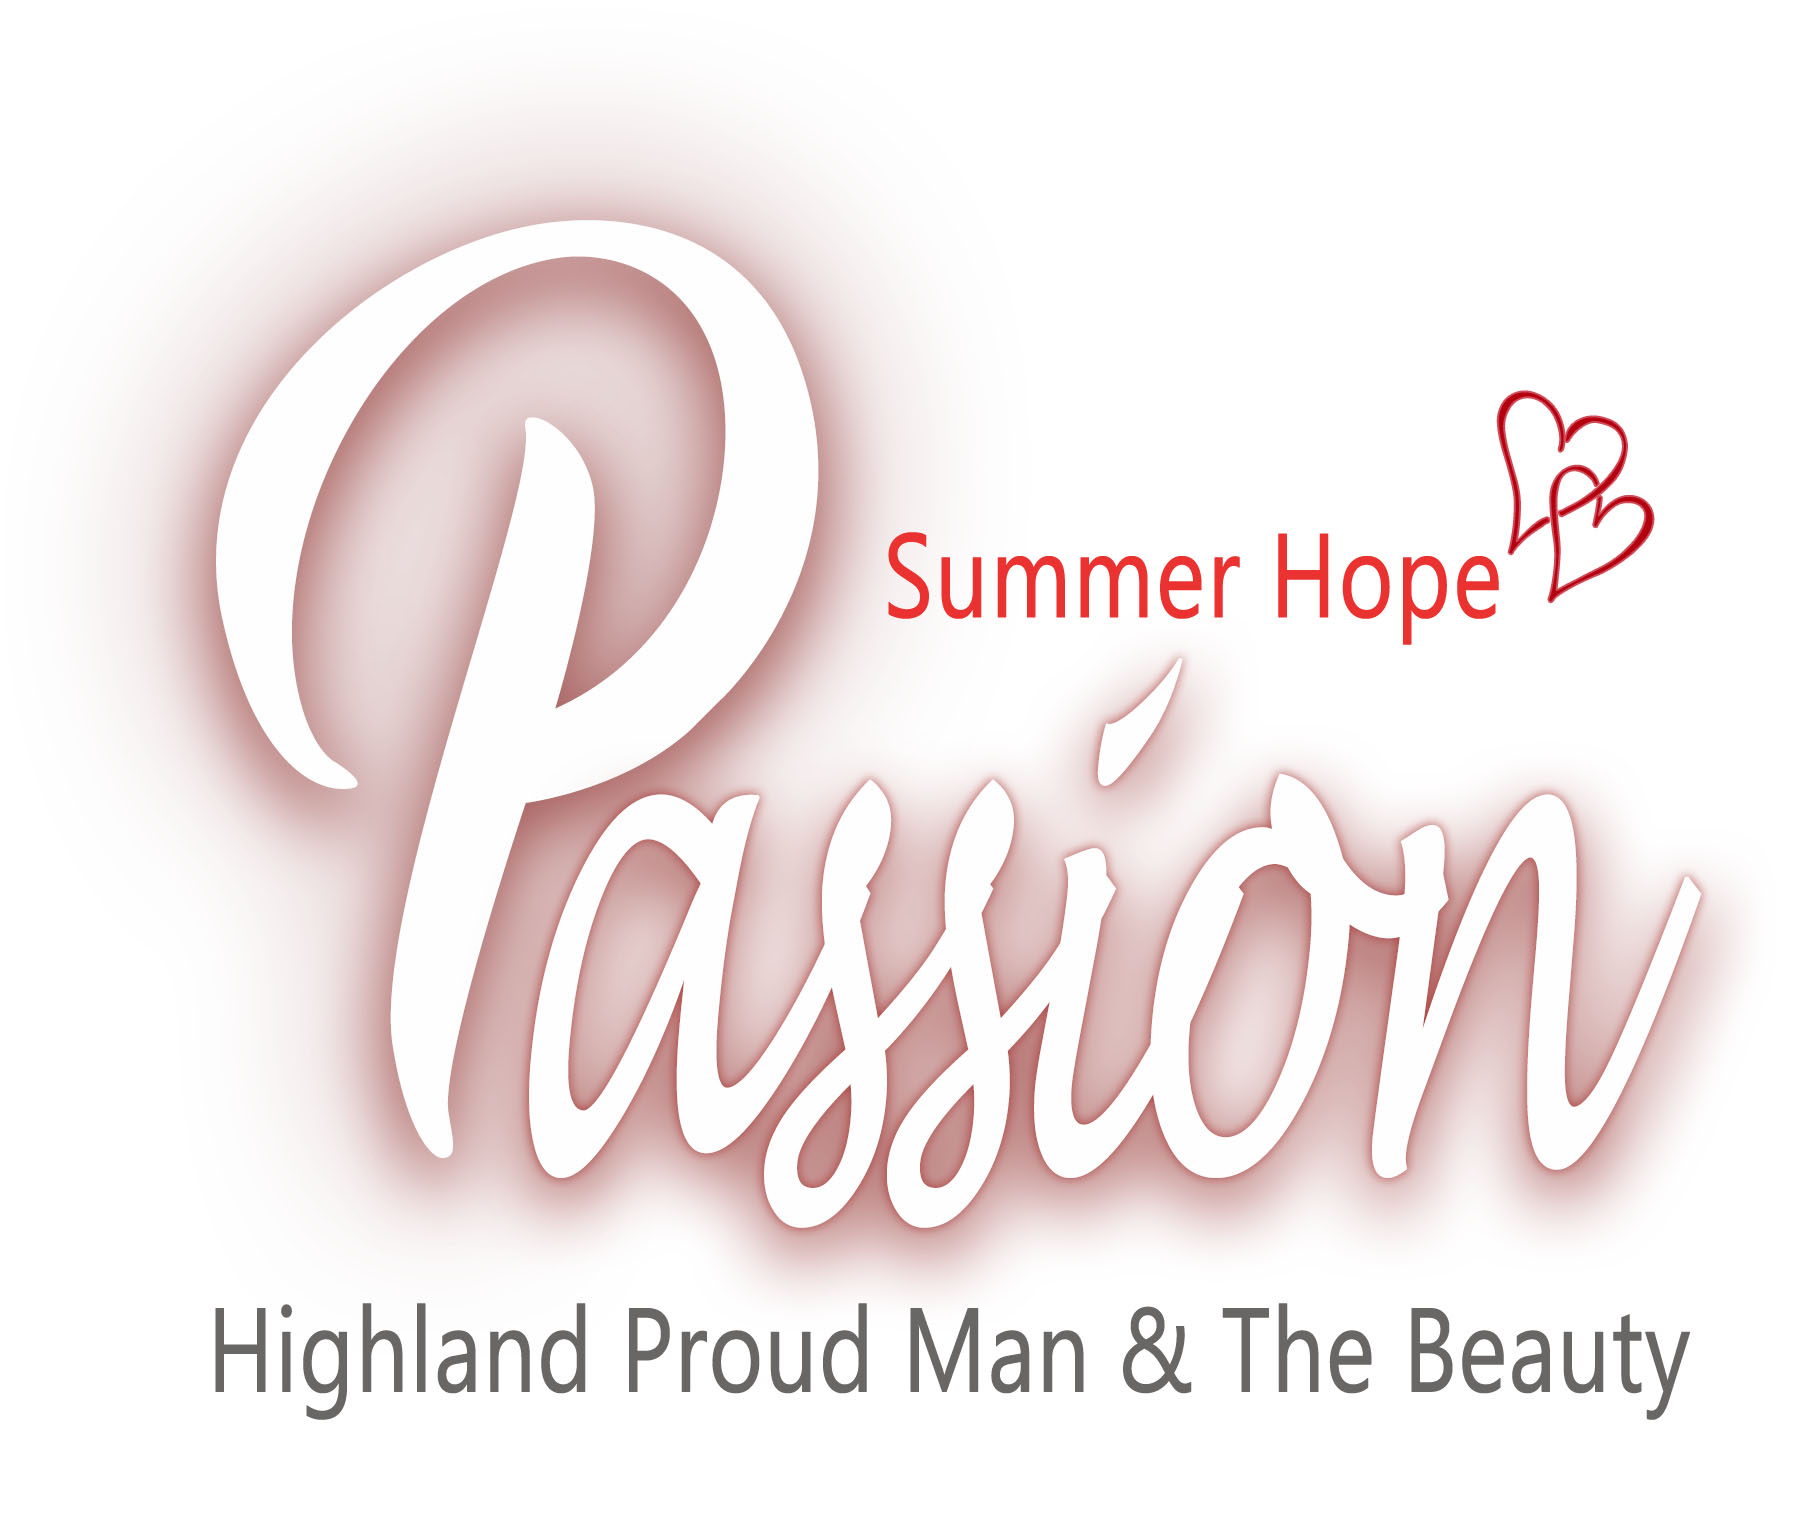 kindle ebook Summer Hope Passion - Highland Proud Man & The Beauty